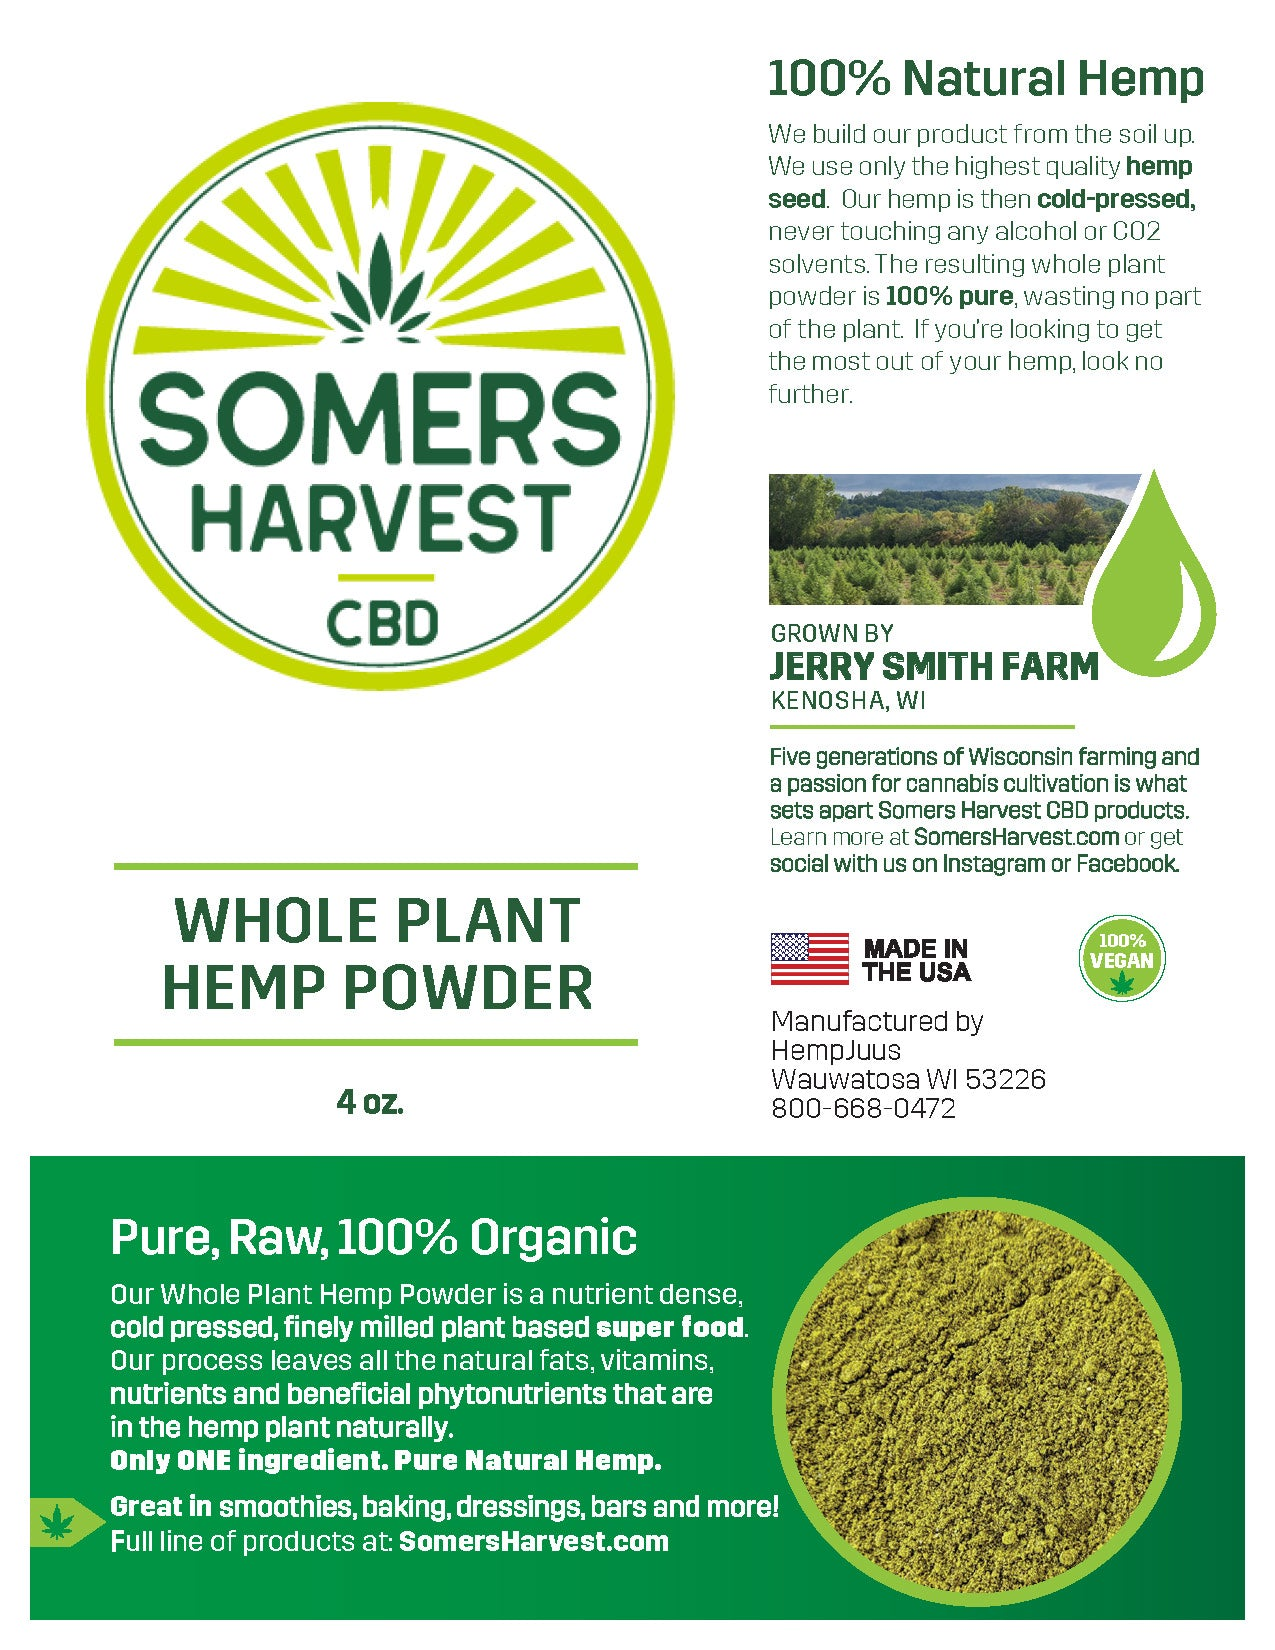 Somers Harvest Whole Plant Hemp Powder Package Label